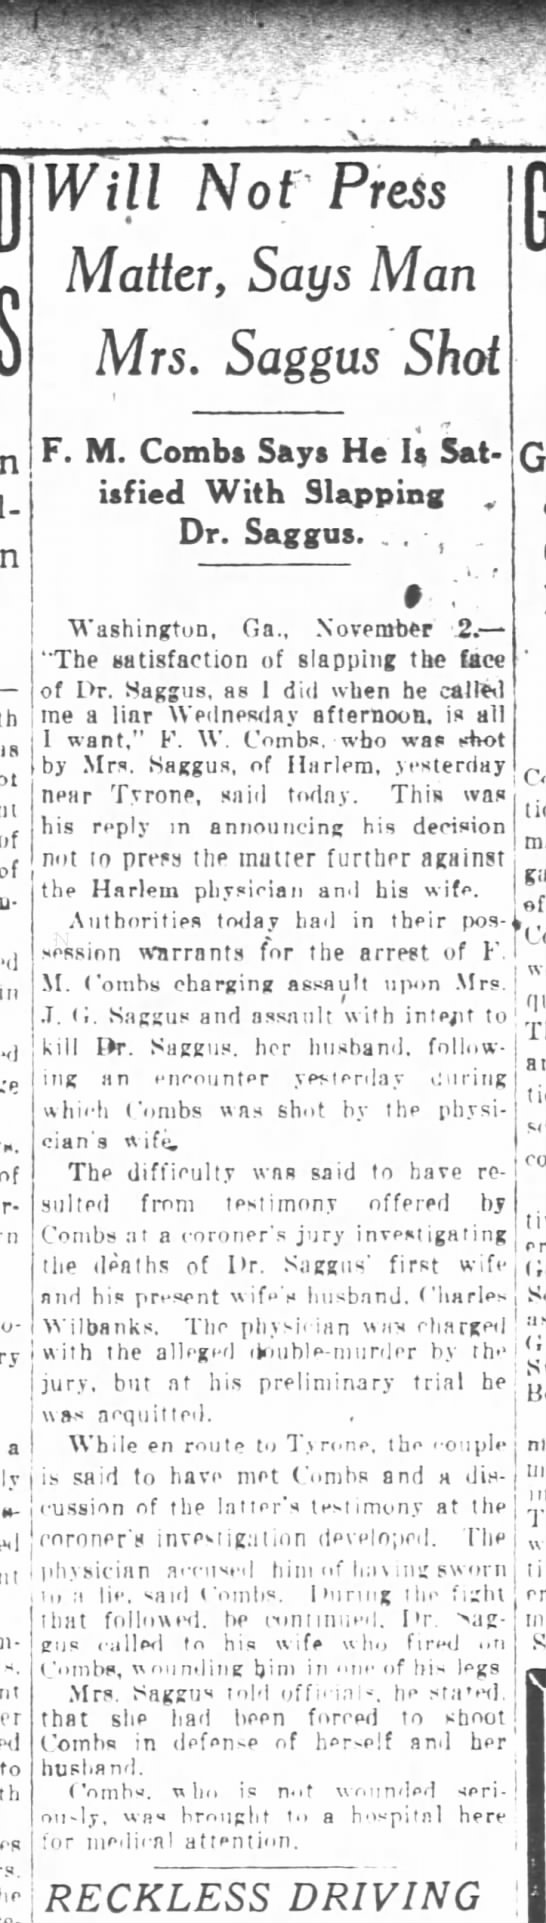 Atlanta Constitution Newspaper 3 Nov 1922 Page 7: Will Not Press Matter, Says Man Mrs. Saggus Shot -